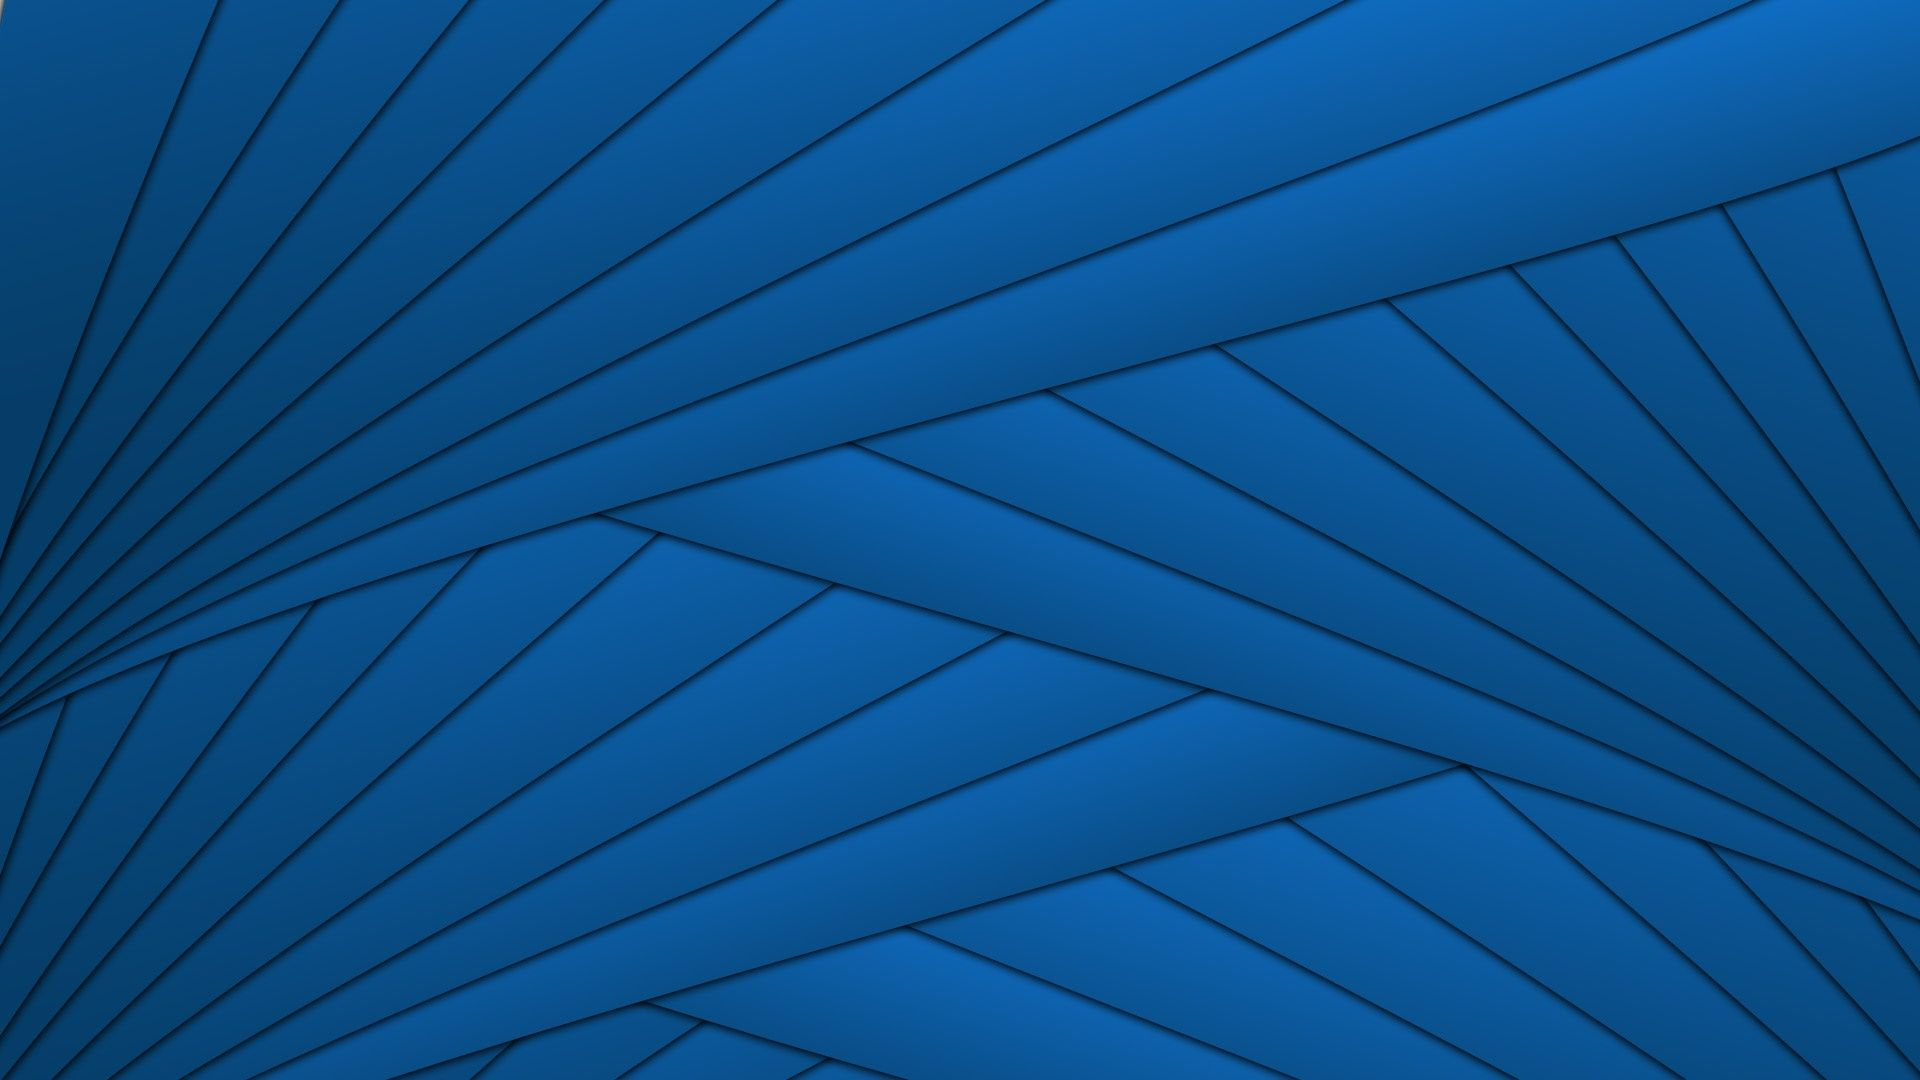 1920x1080 Descargar Dark Blue Checks Plain Hd Wallpapers HD Wallpapers - Simple